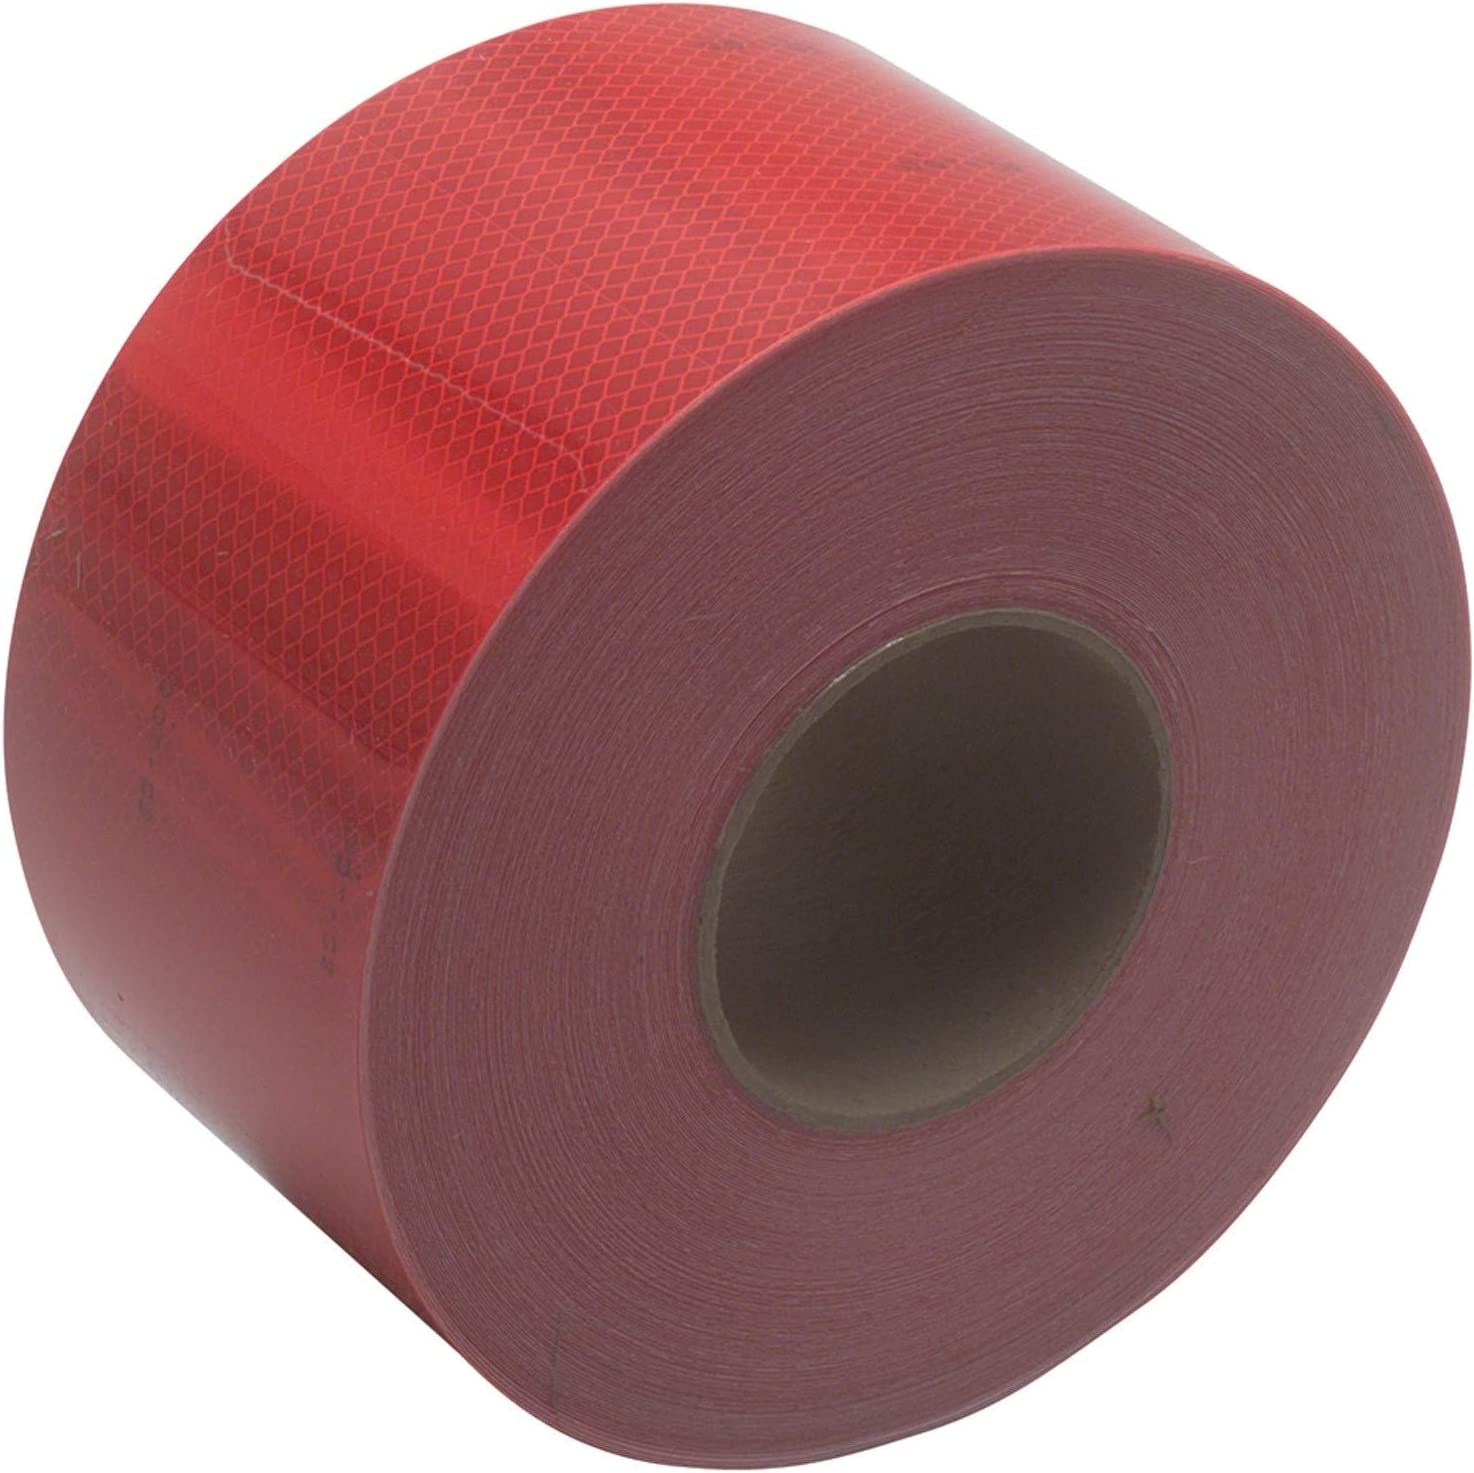 """Safe Way Traction 4 X 10 Foot Roll of 3M 983 Series Diamond Grade Conspicuity Trailer DOT-C2 Reflective Safety Tape Red /& White 6/""""// 6/"""" Pattern 983-326-4"""